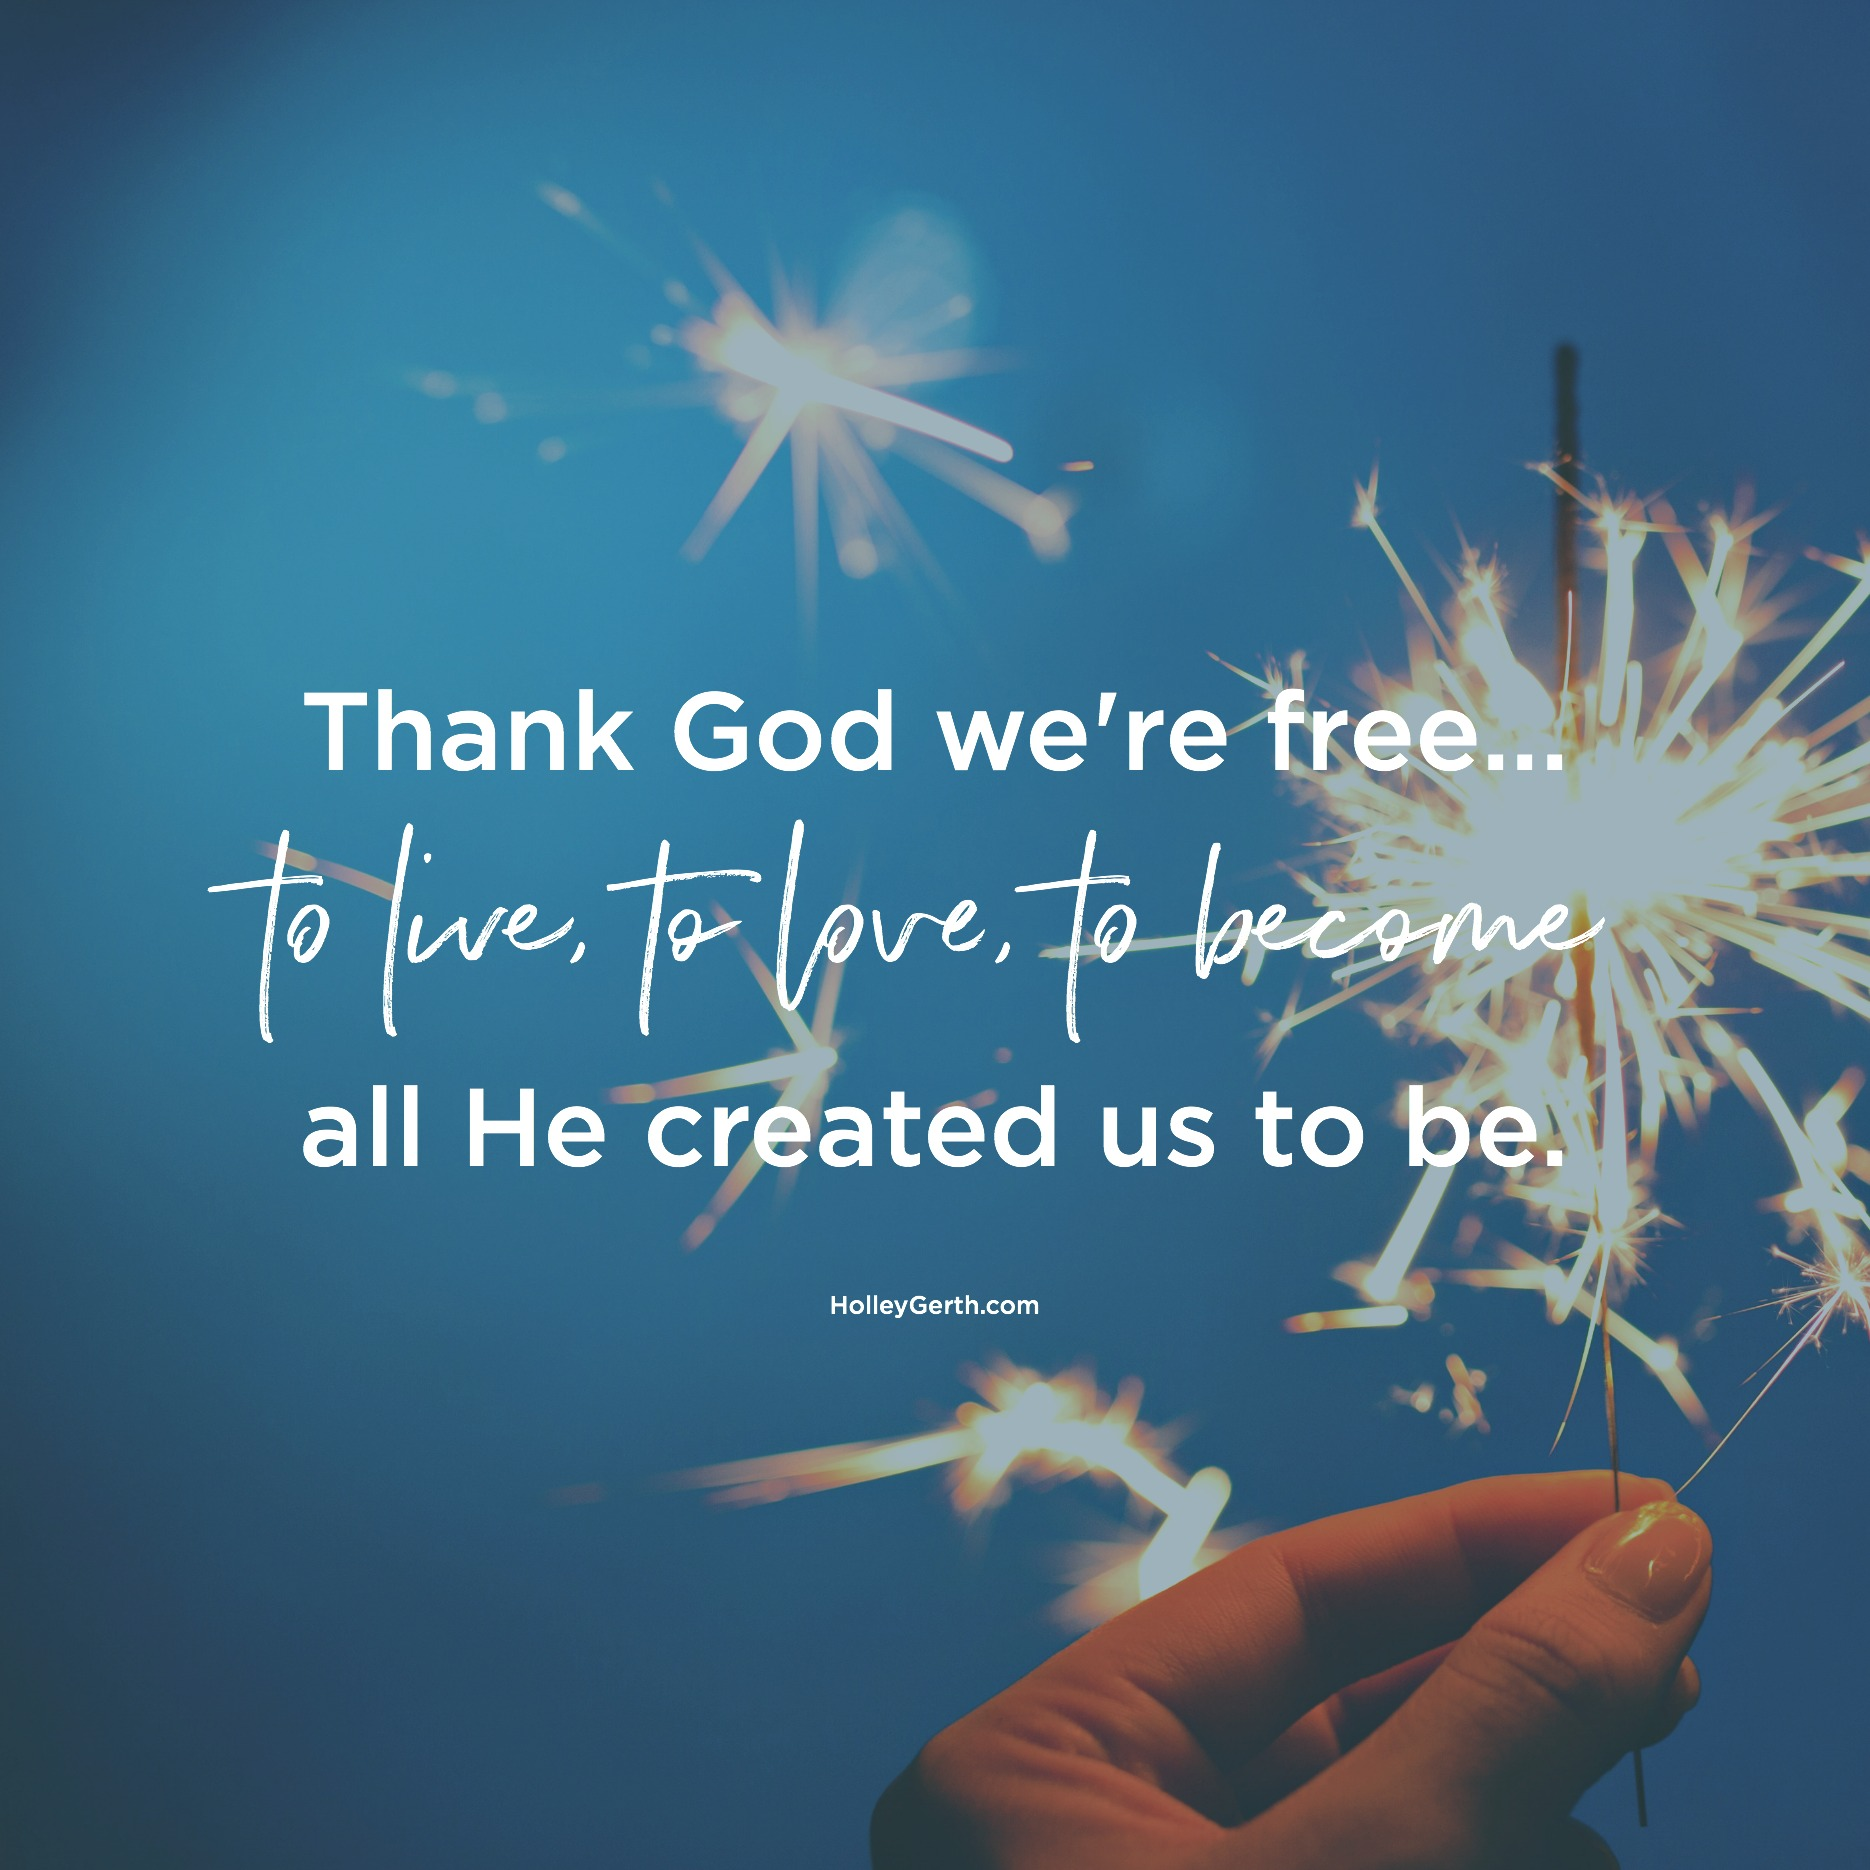 Thank God we're free... to live, to love, to become all He created us to be.